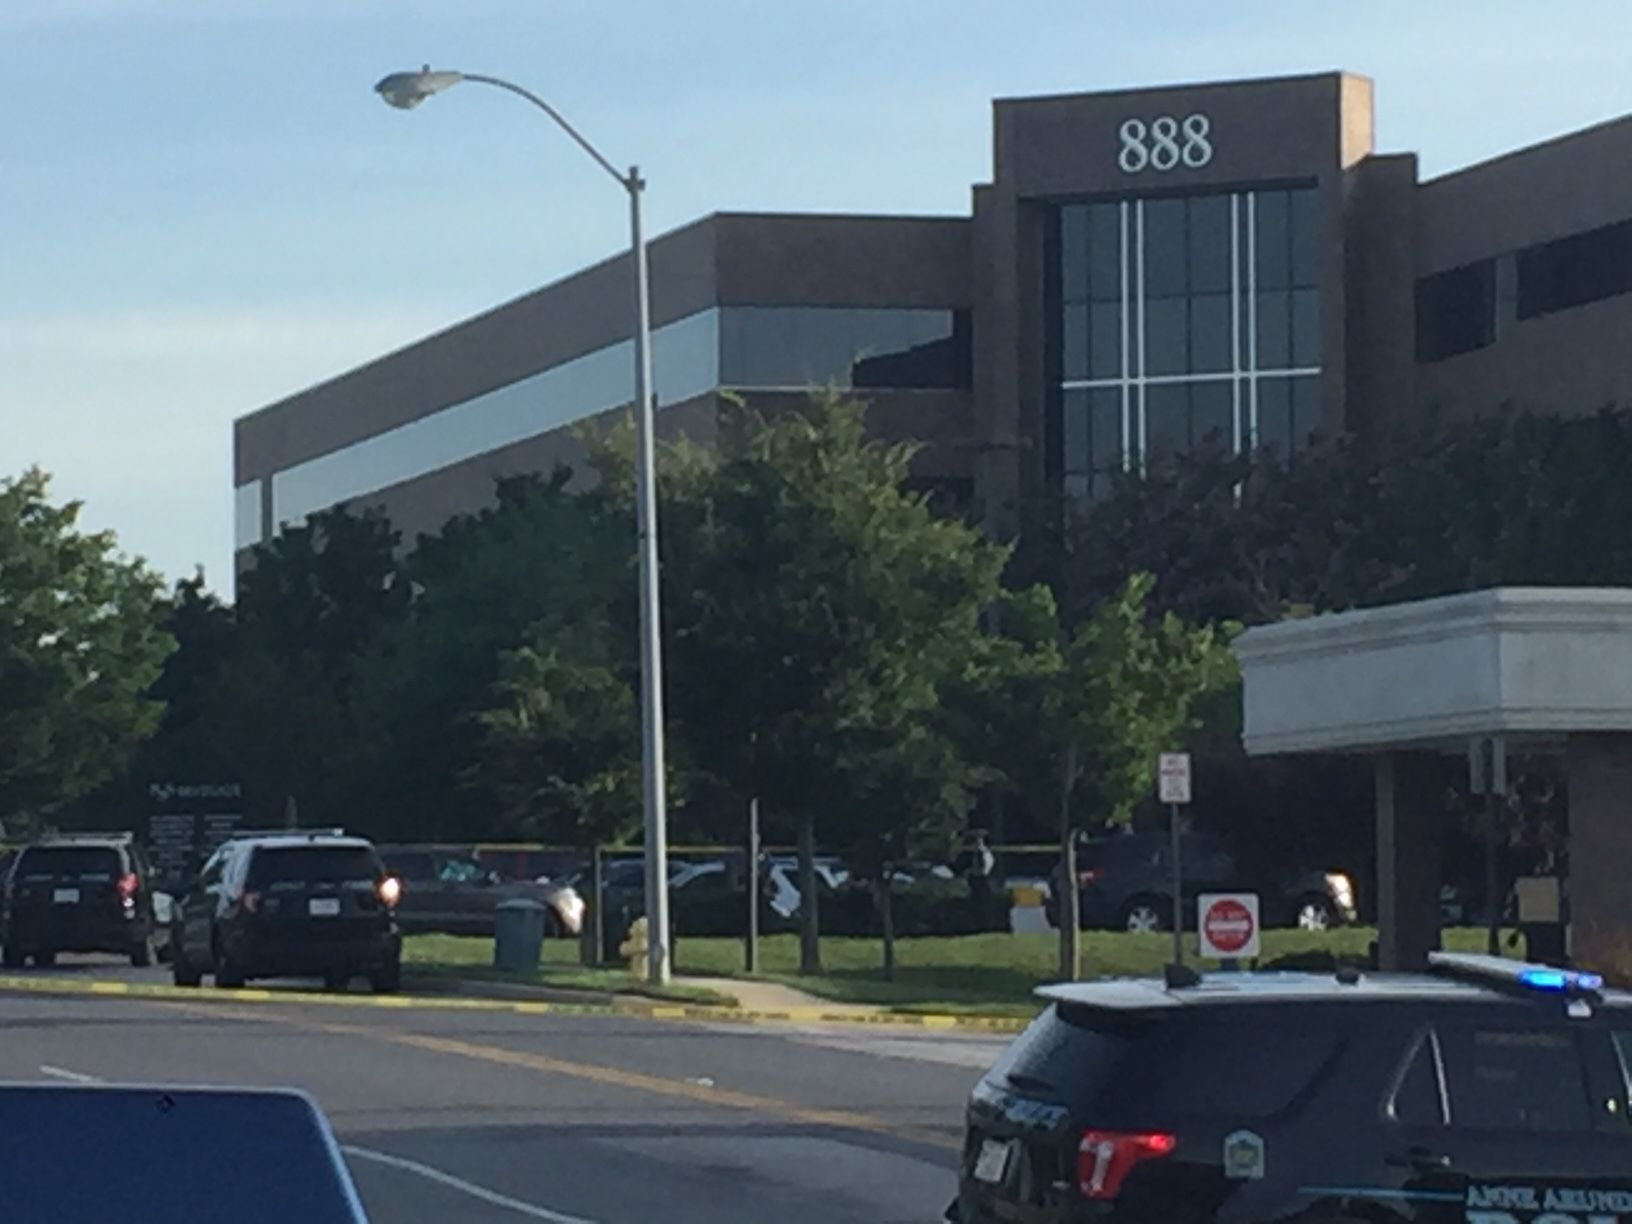 The building where the Capital Gazette newsroom is housed on 888 Bestgate Road in Annapolis, Maryland. (WTOP/John Domen)